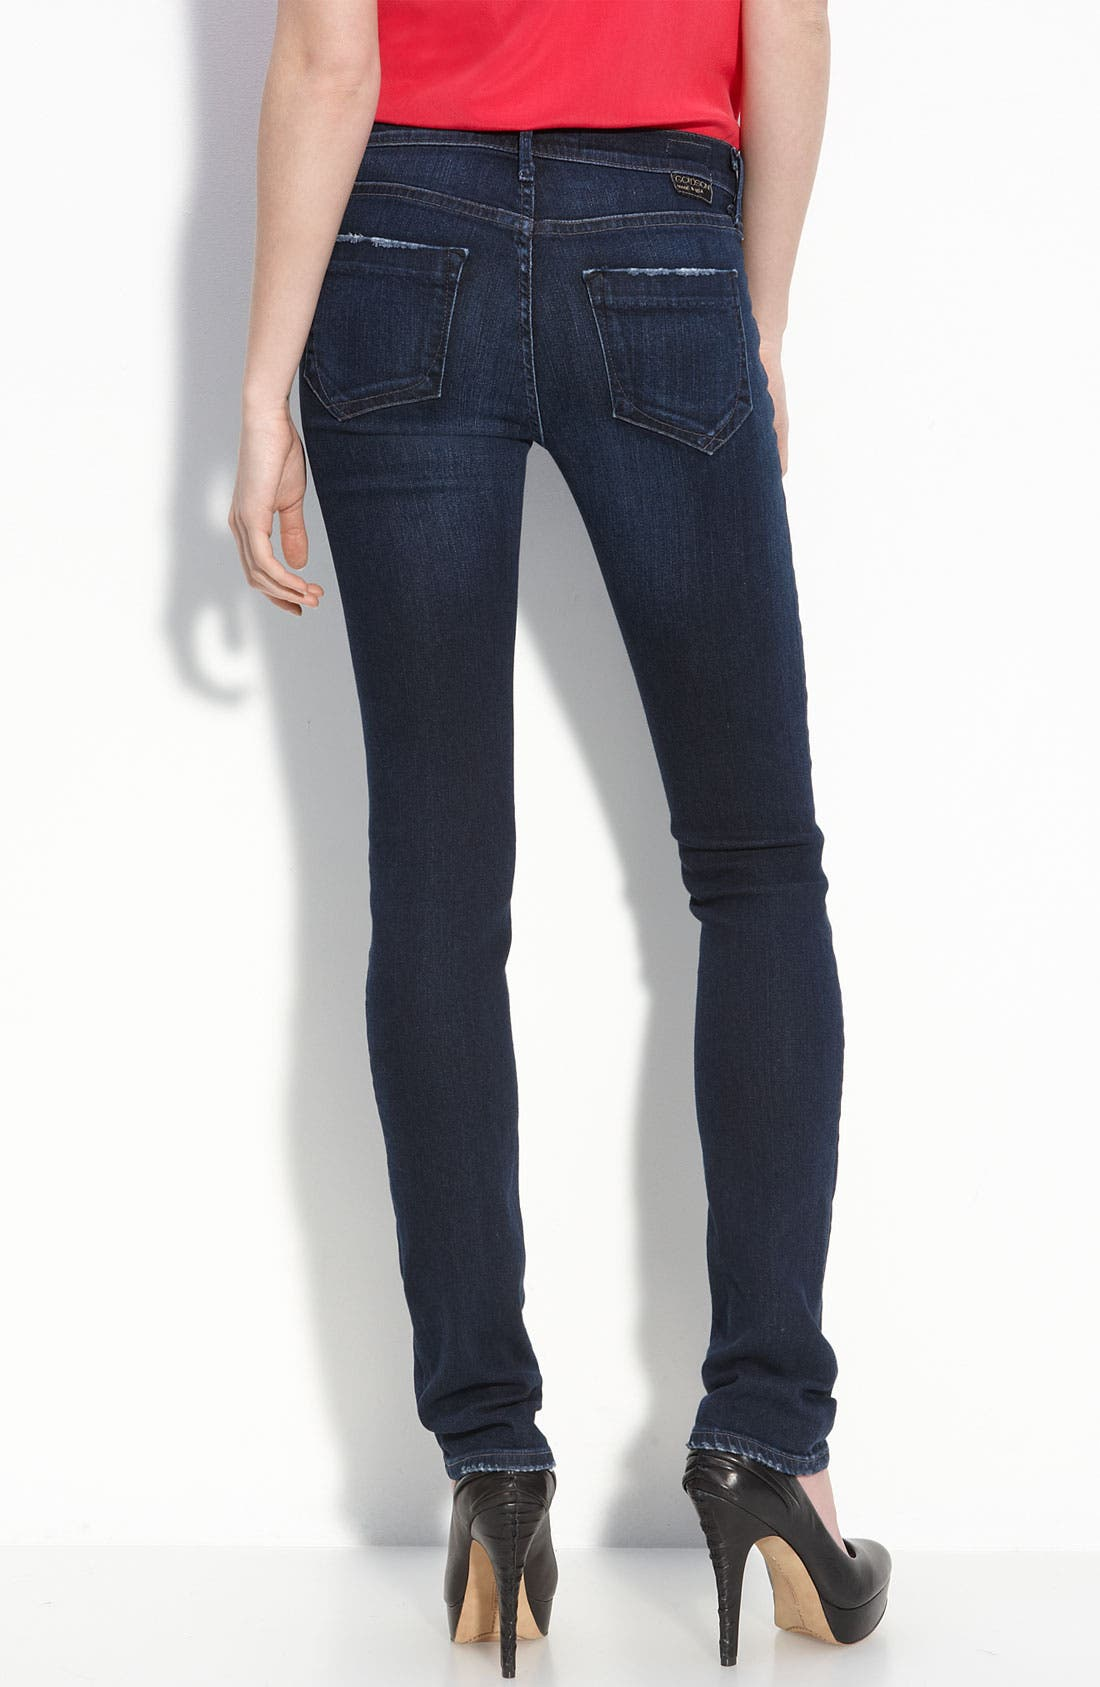 Main Image - Goldsign 'Misfit' Straight Leg Stretch Jeans (Motif Wash)